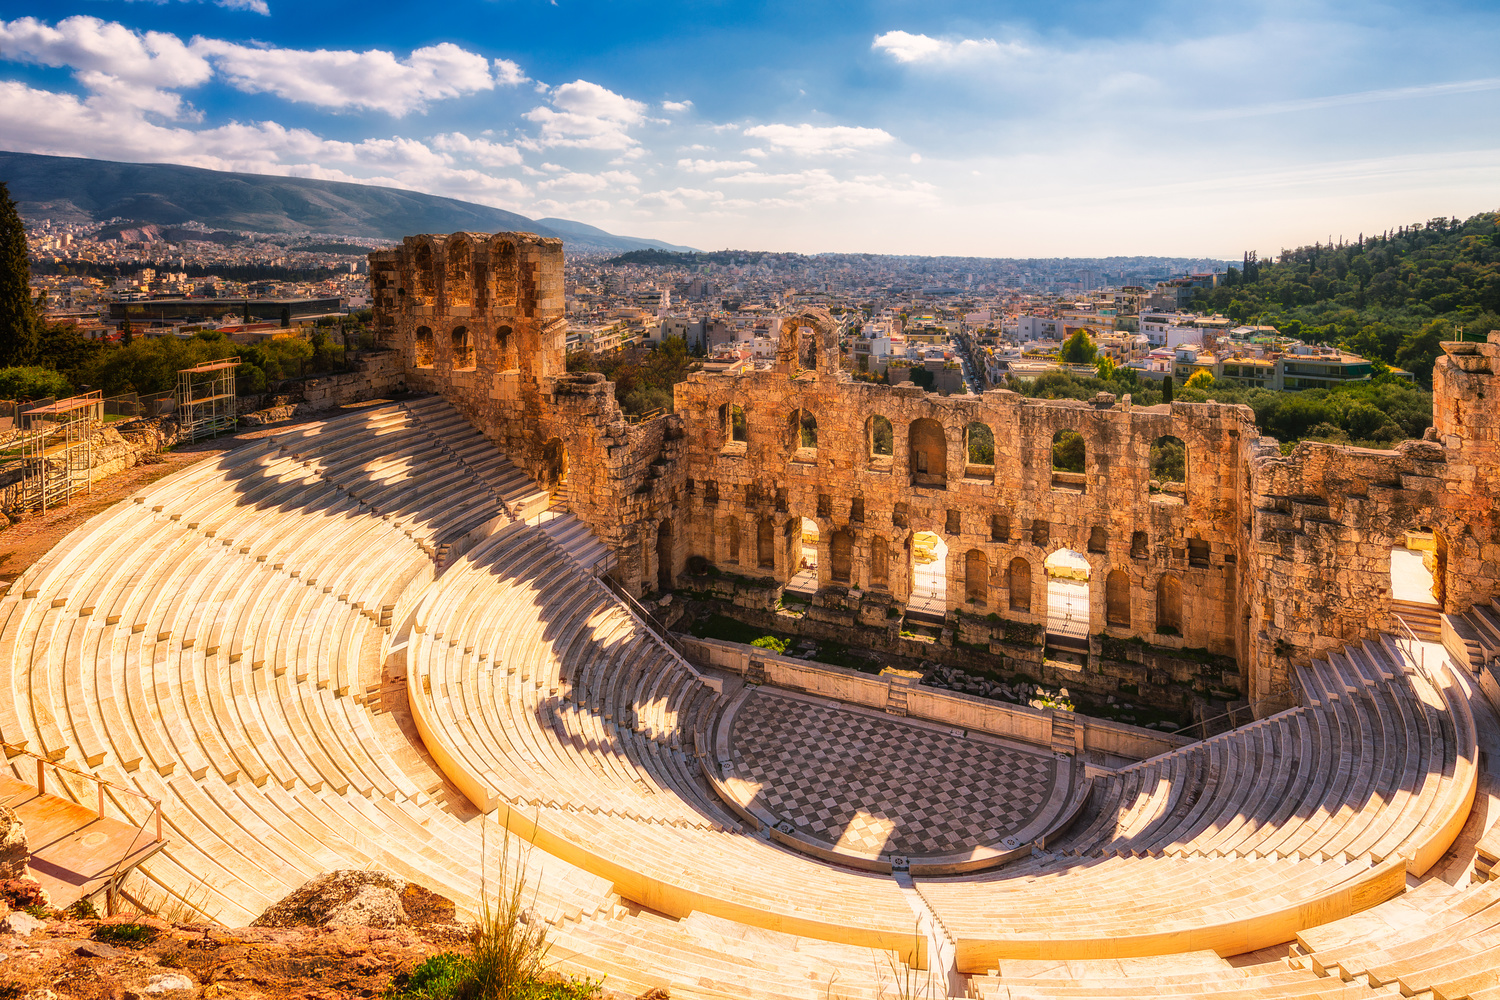 Ancient theatre - Odeon Of Herodes Atticus | Athens, Greece by Nico Trinkhaus